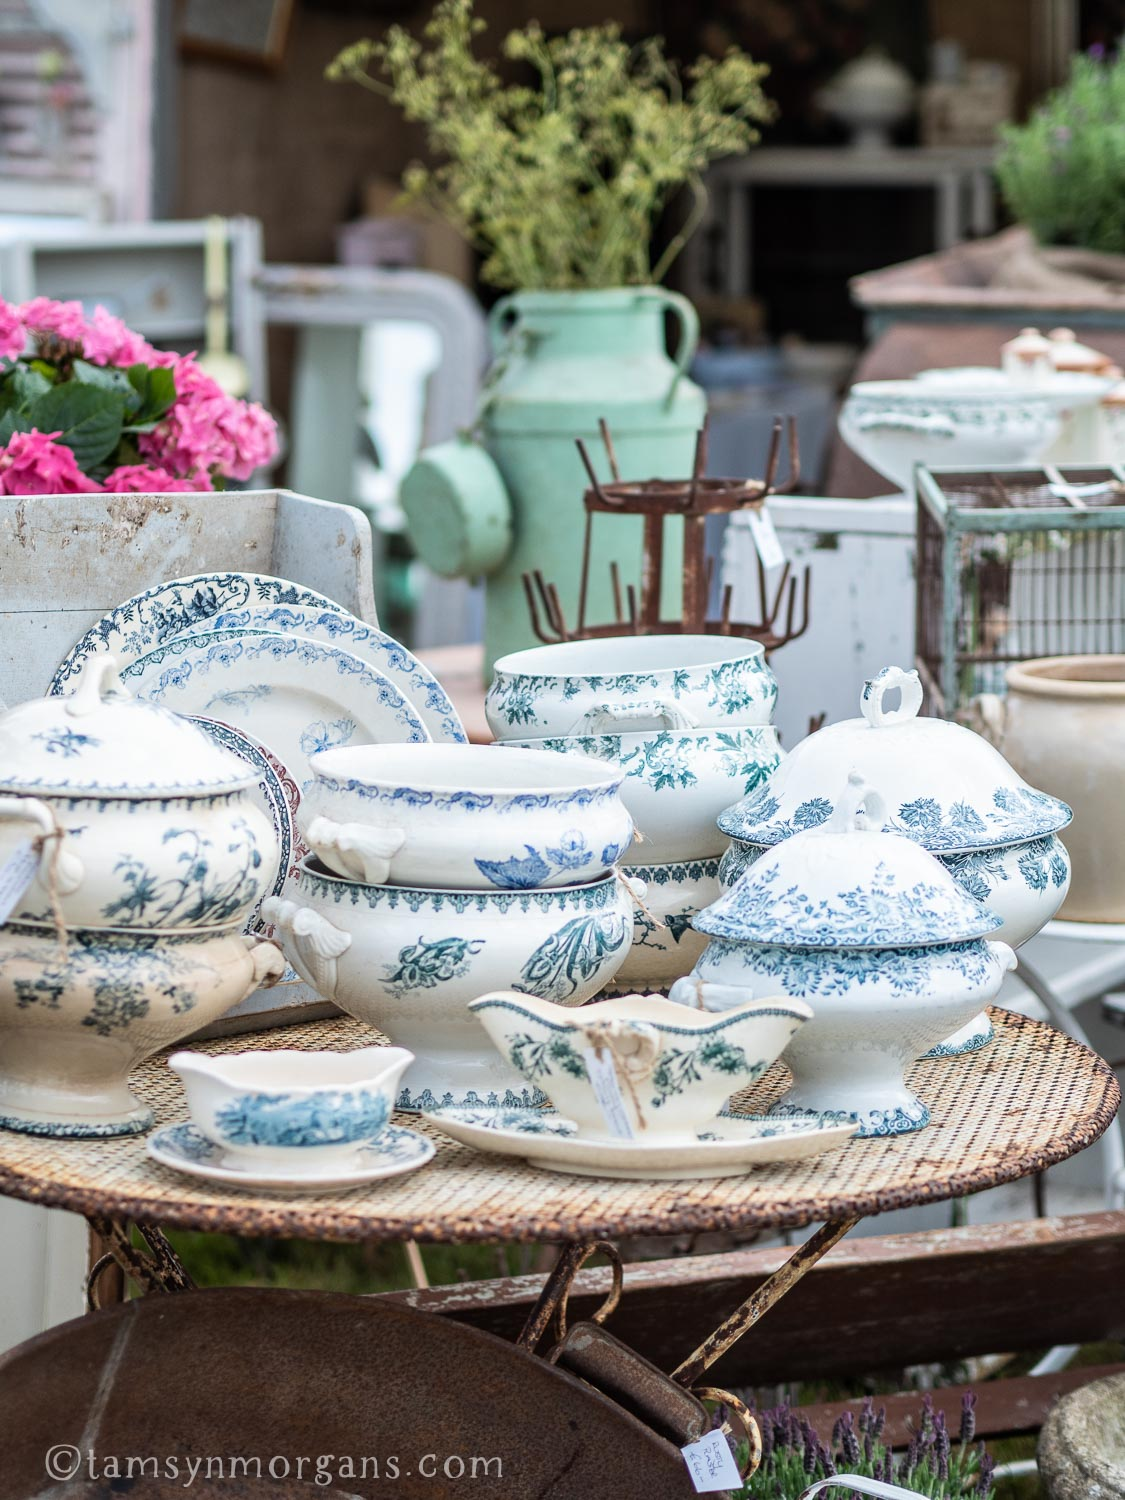 Blue and white transferware at the Country Brocante